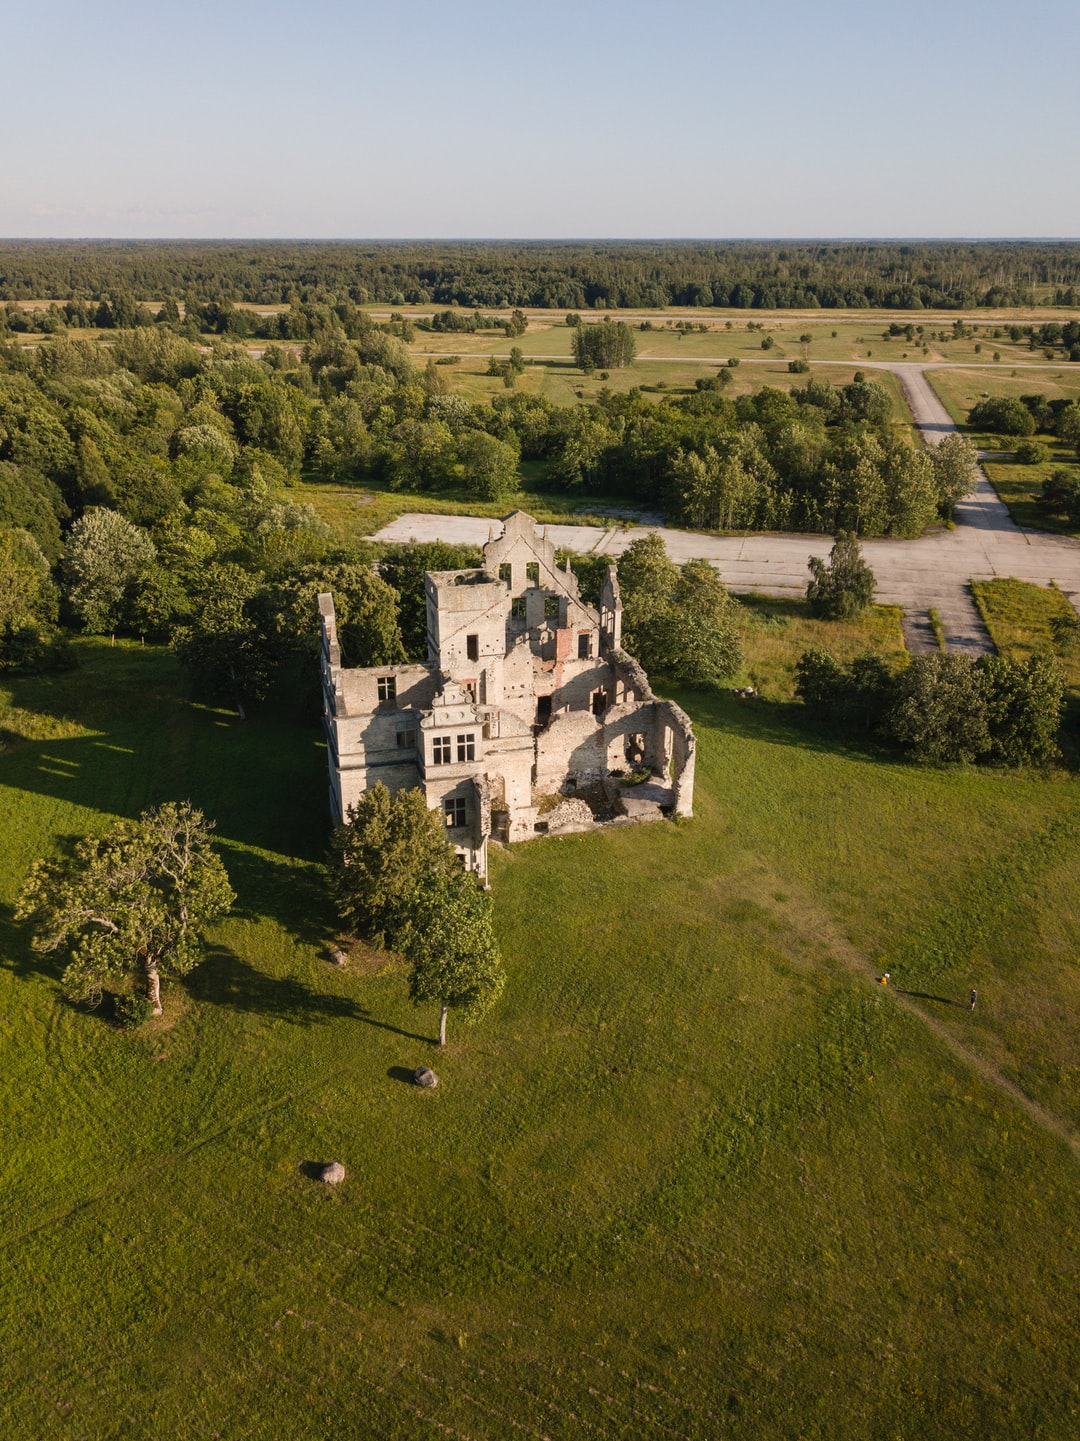 Ungru manor in western Estonia, near a town called Haapsalu. Construction of this building was left standing still in 1899 and it has been falling into pieces since.